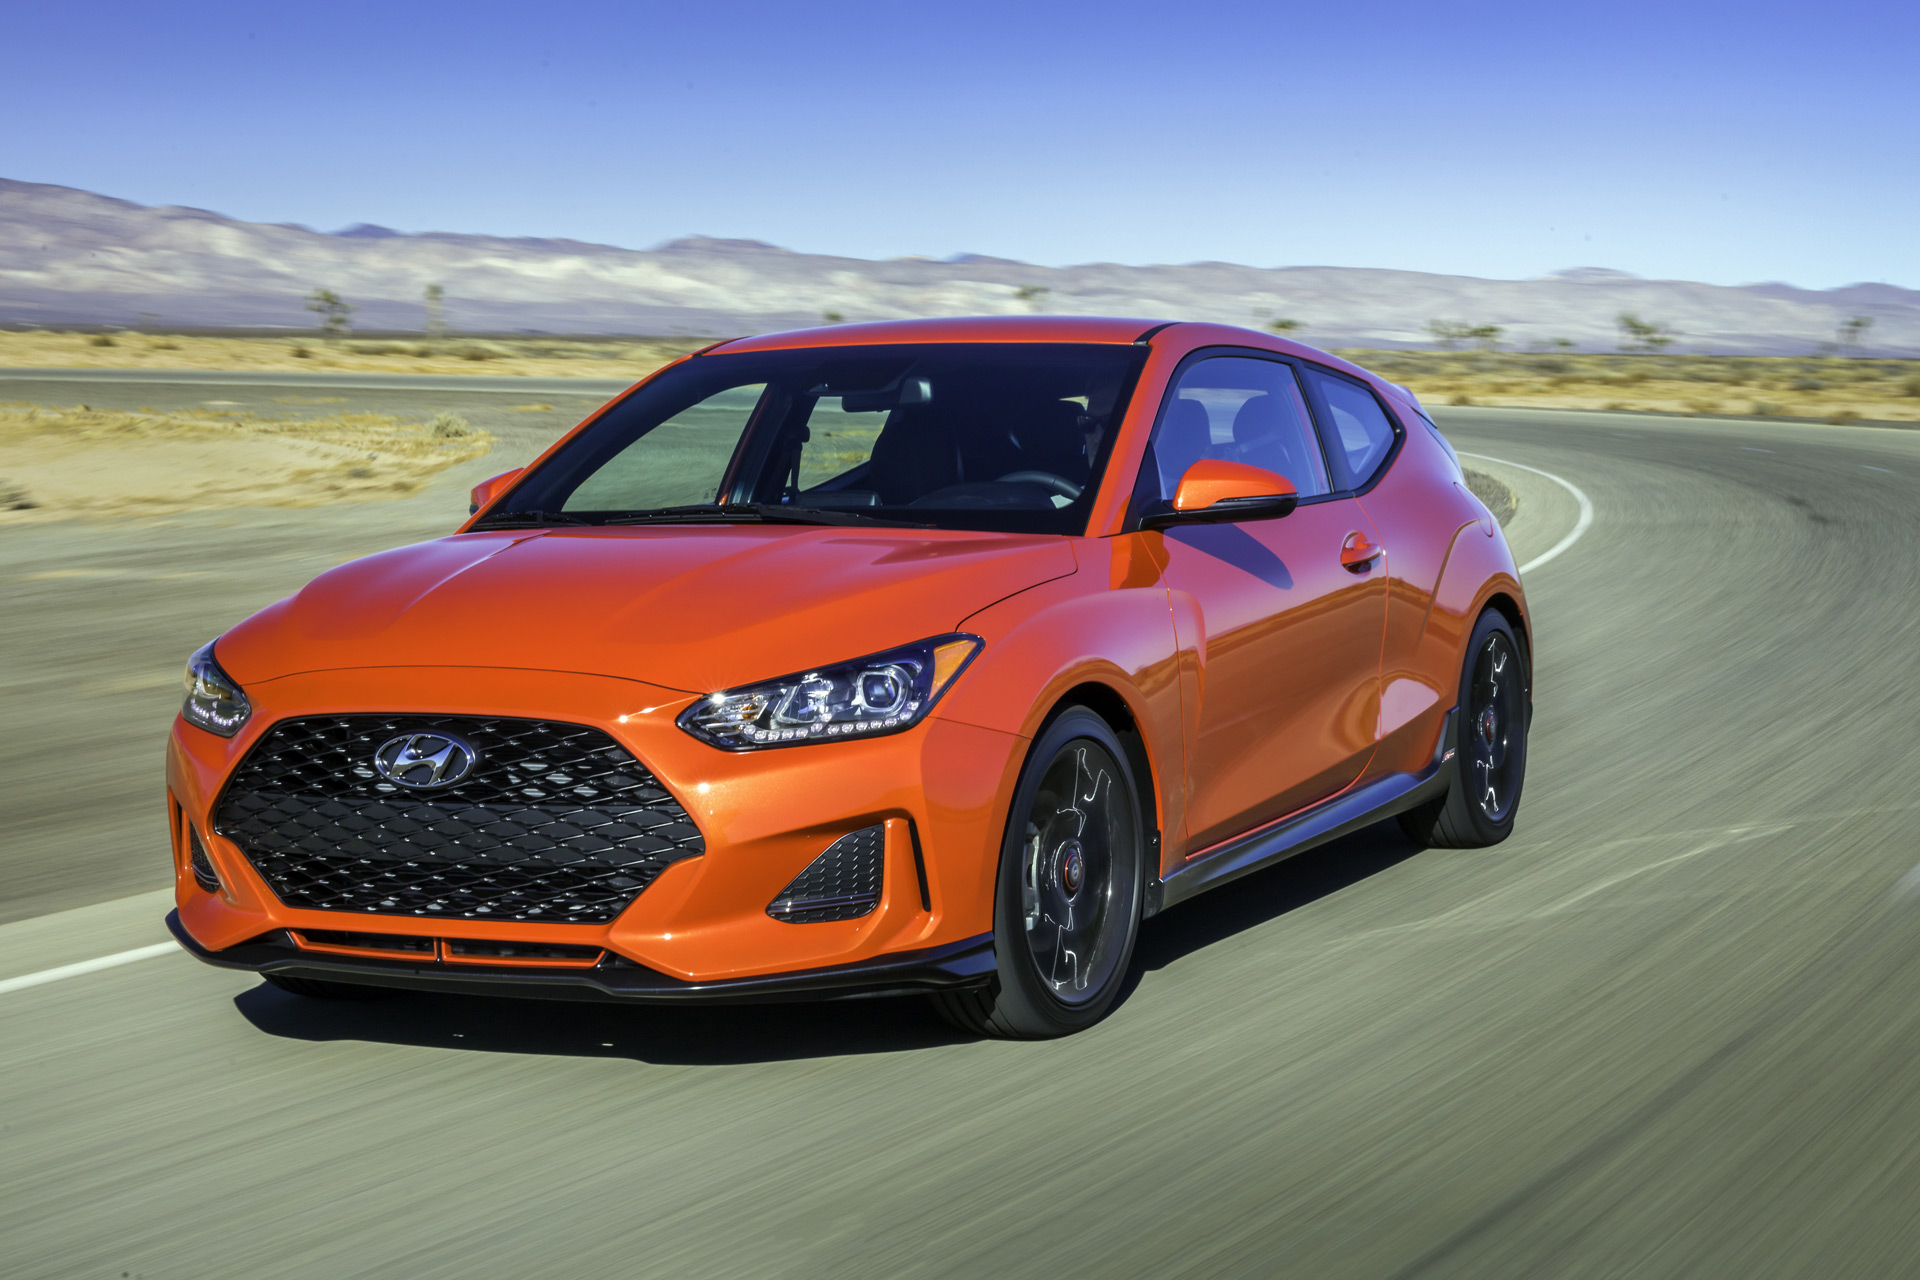 2019 Hyundai Veloster earns Top Safety Pick award